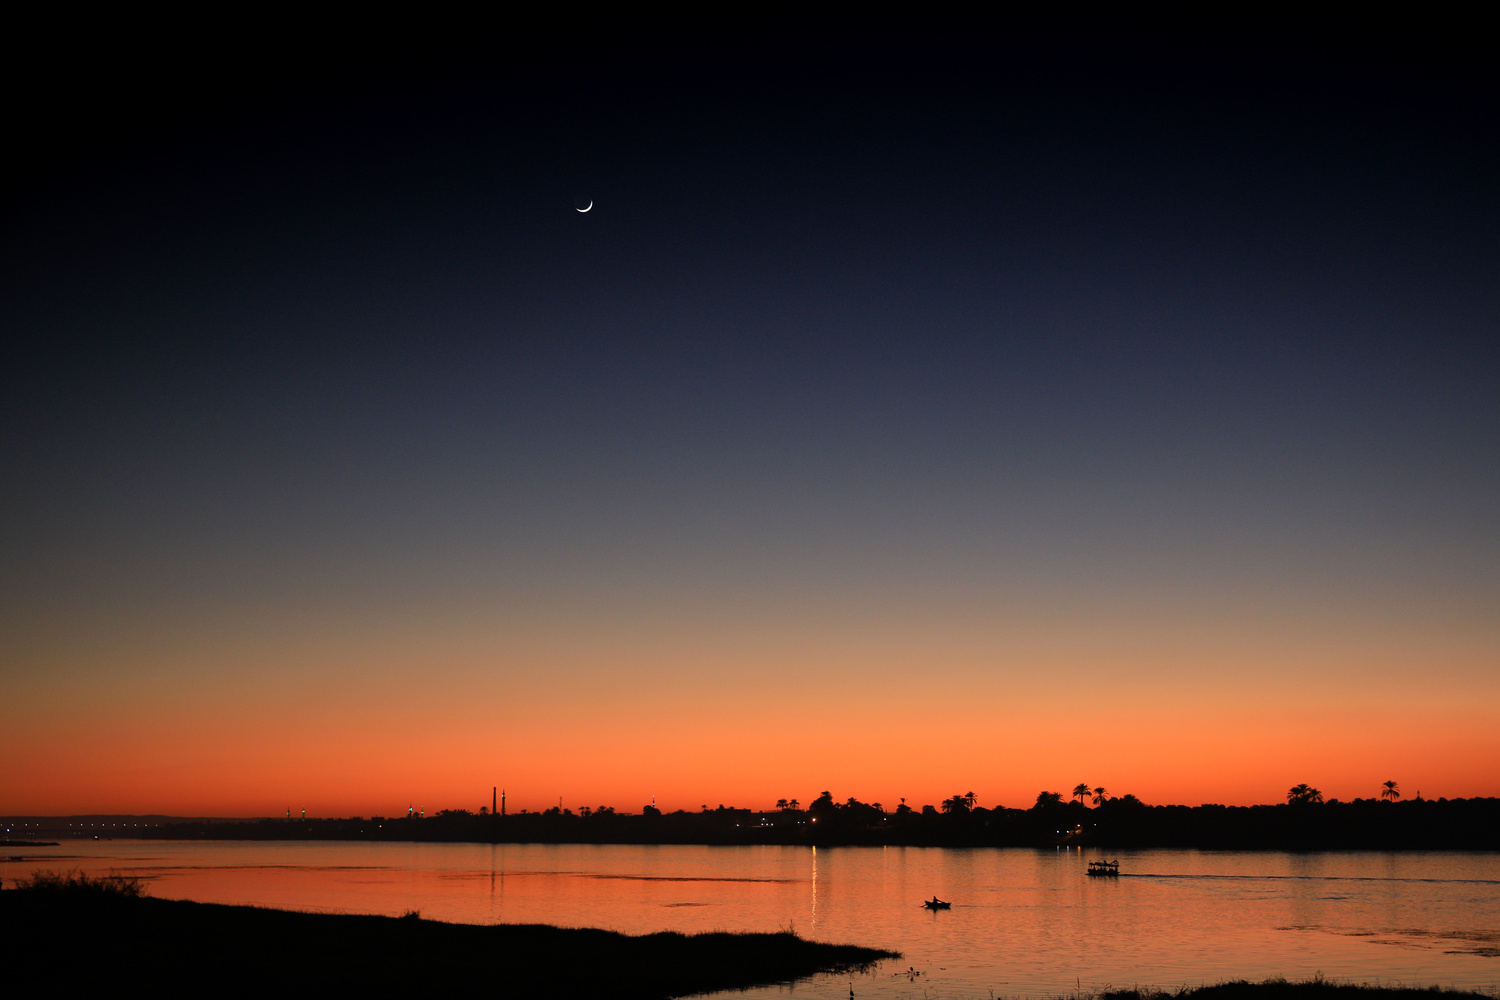 moon in the night sky over the last of a sunset by Simon Richards